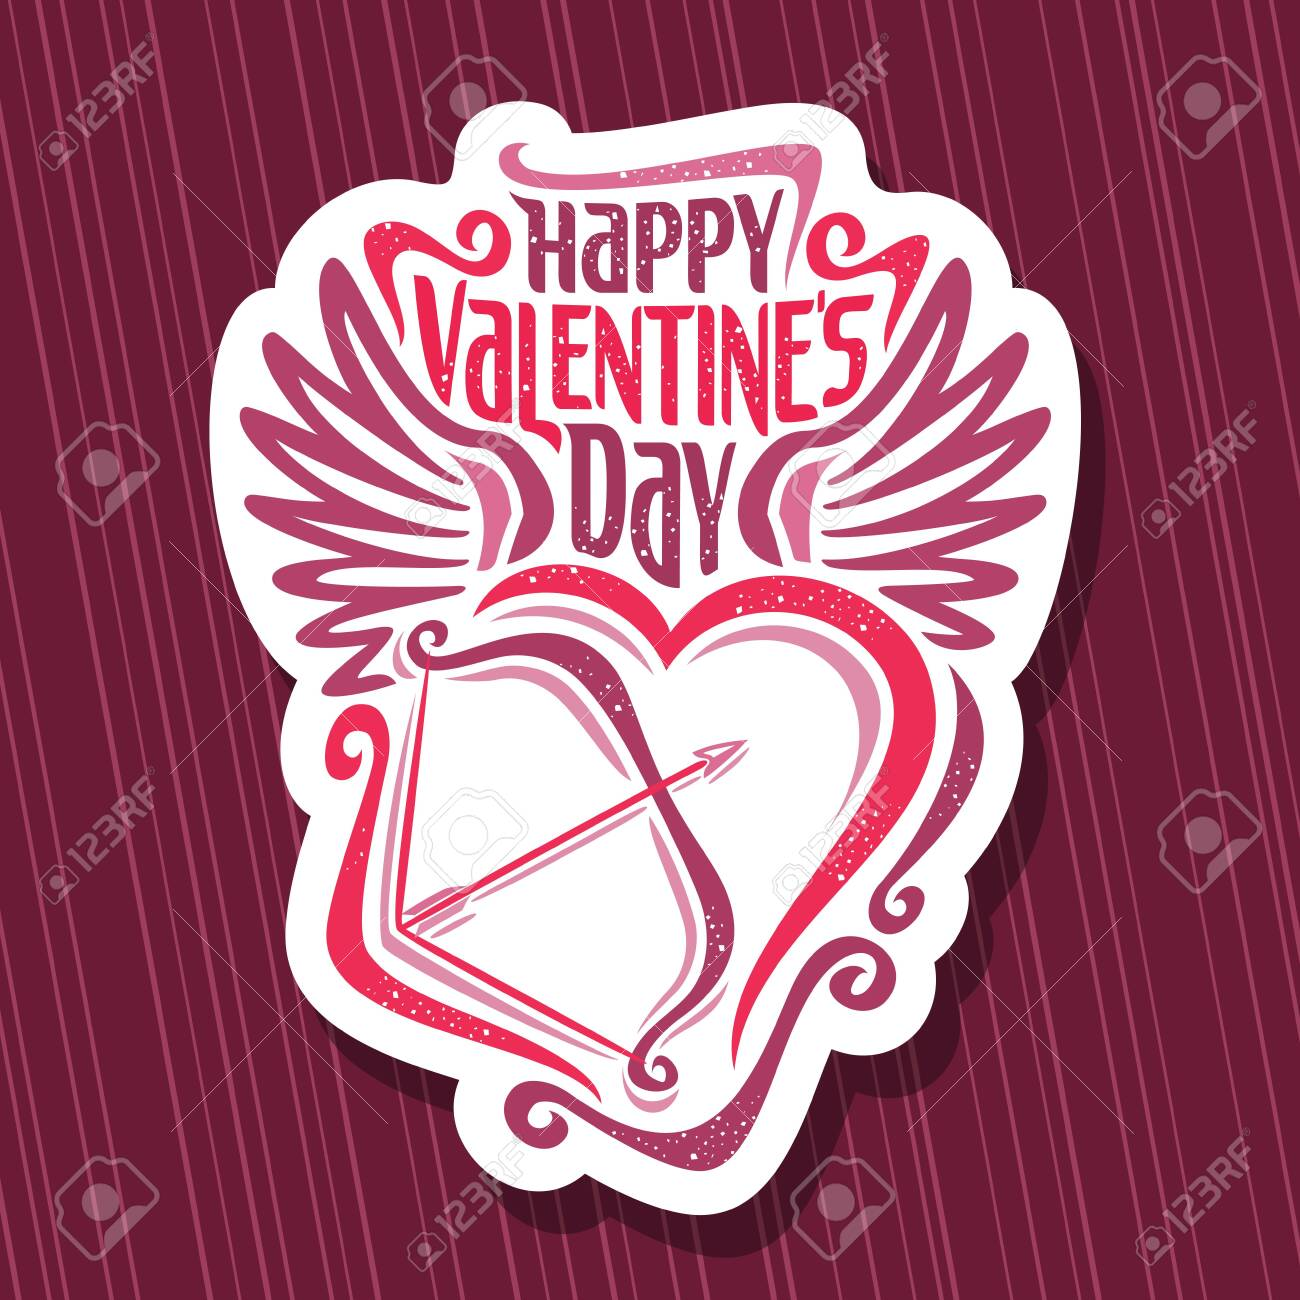 St Valentine S Day Cut Paper Tag With Original Font For Greeting Royalty Free Cliparts Vectors And Stock Illustration Image 137937444